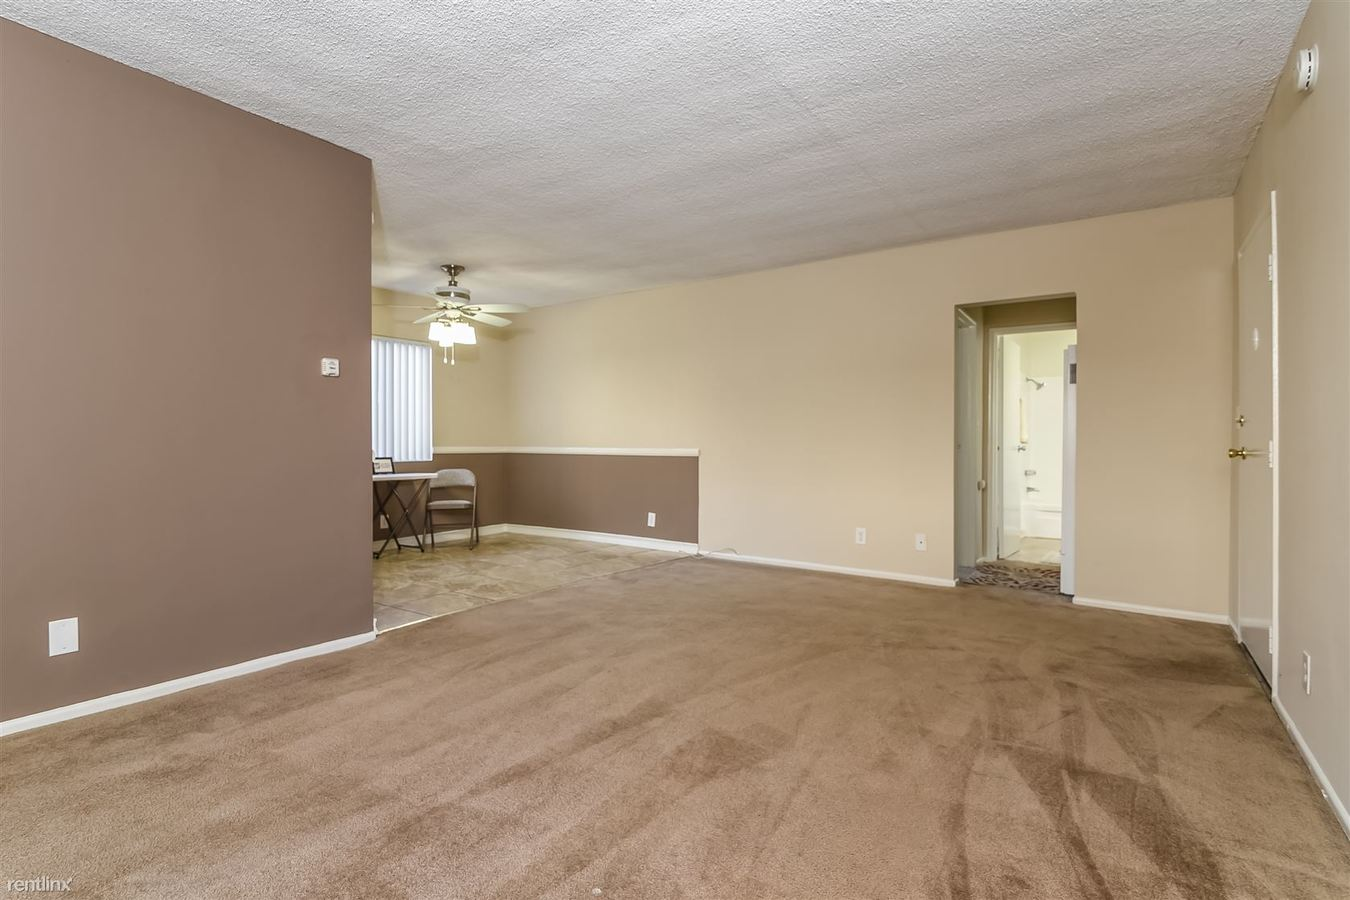 2 Bedrooms 2 Bathrooms Apartment for rent at Rose Gardens Apartments in San Gabriel, CA